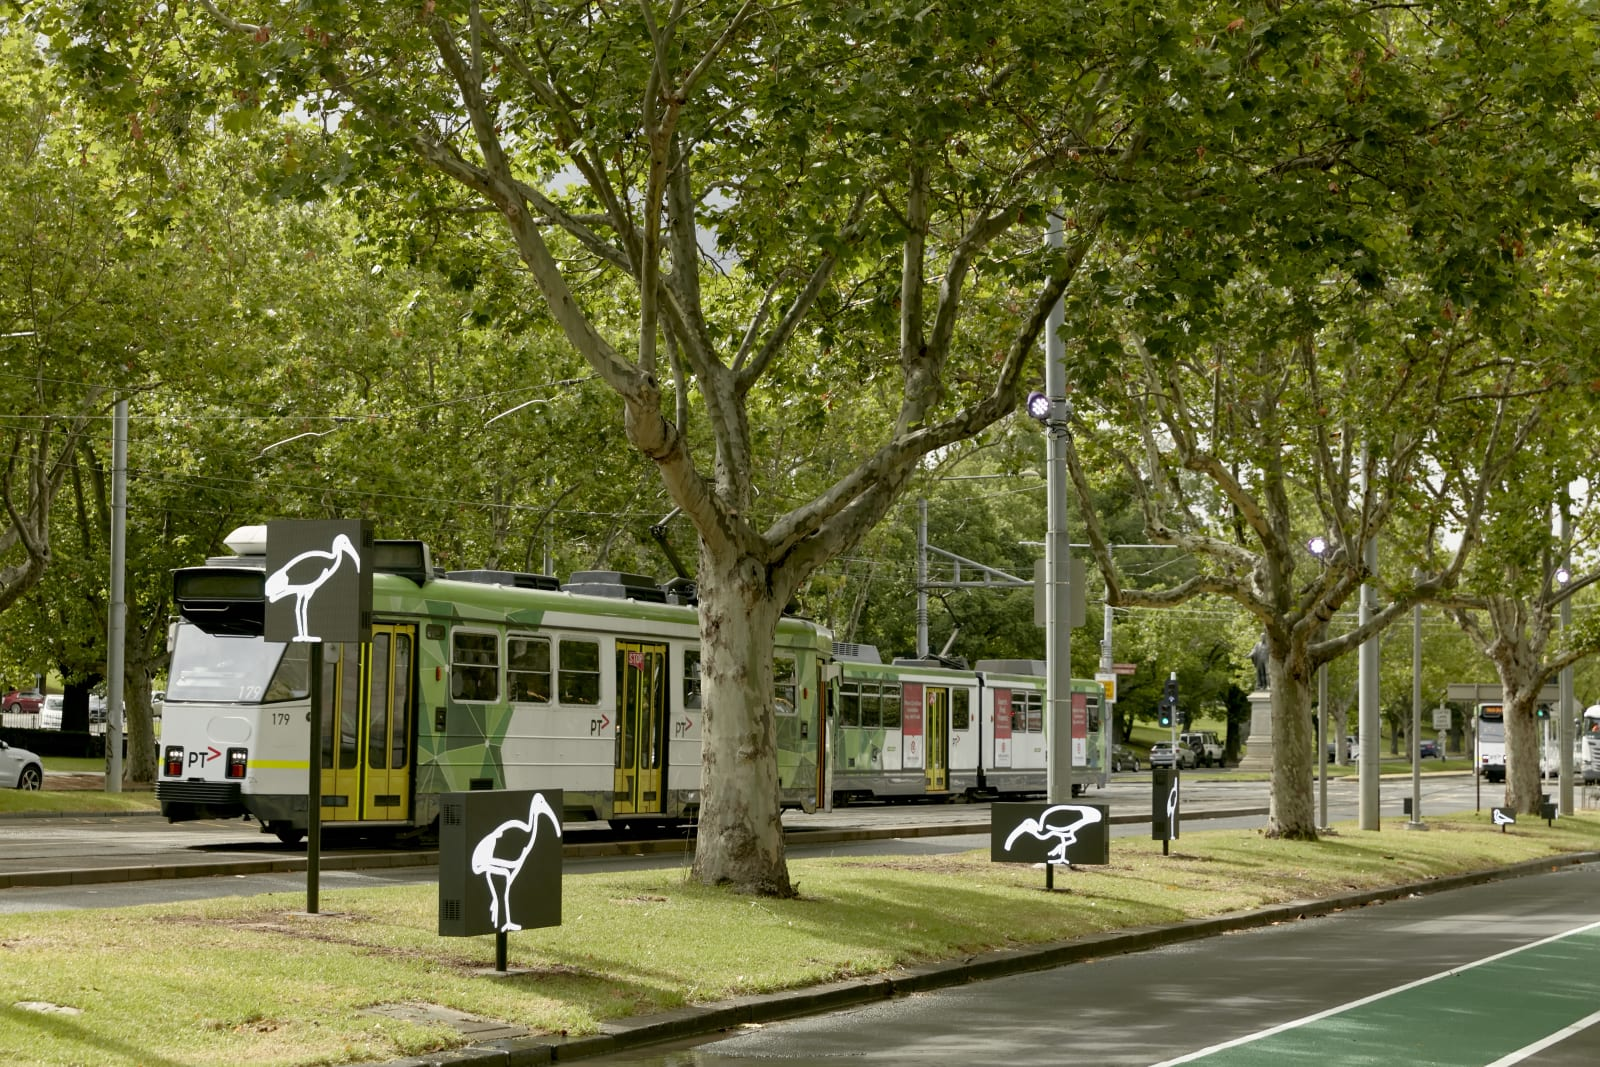 <p>Julian Opie,<em>Australian birds.</em>, 2020, on display at the NGV Triennial 2020, Melbourne. Commissioned by the National Gallery of Victoria and the City of Melbourne.</p>